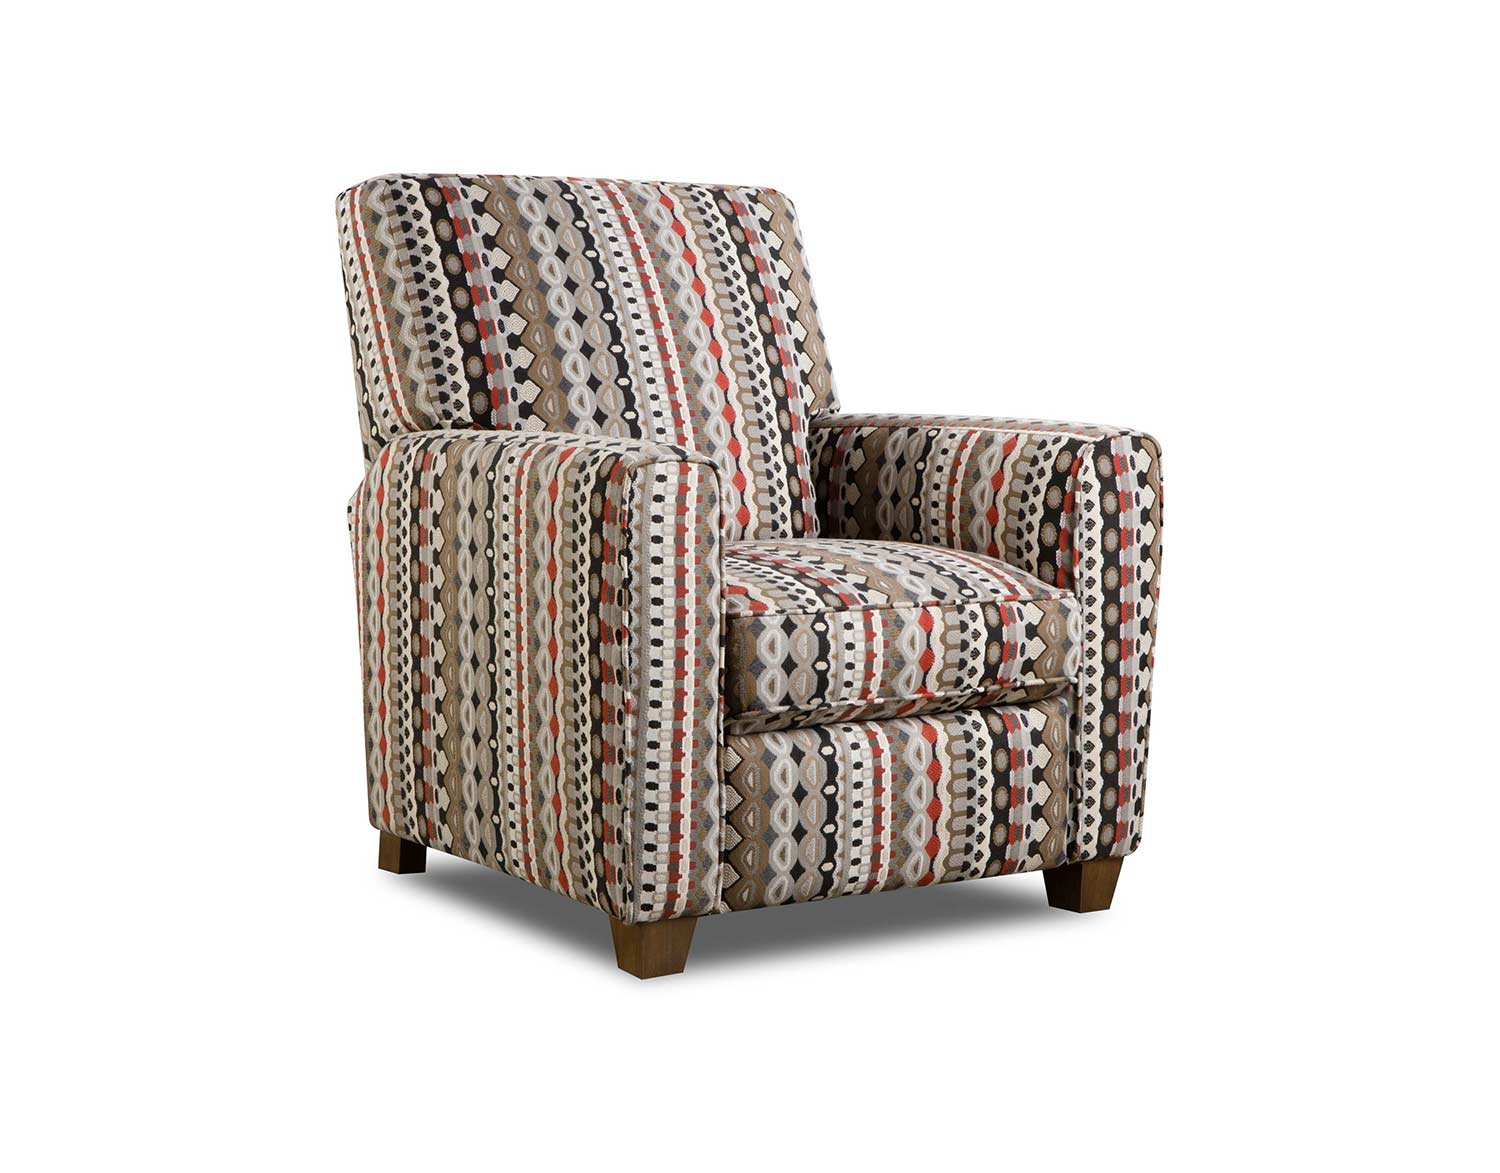 Chelsea Home Barras Recliner Chair - Dabomb Toreador